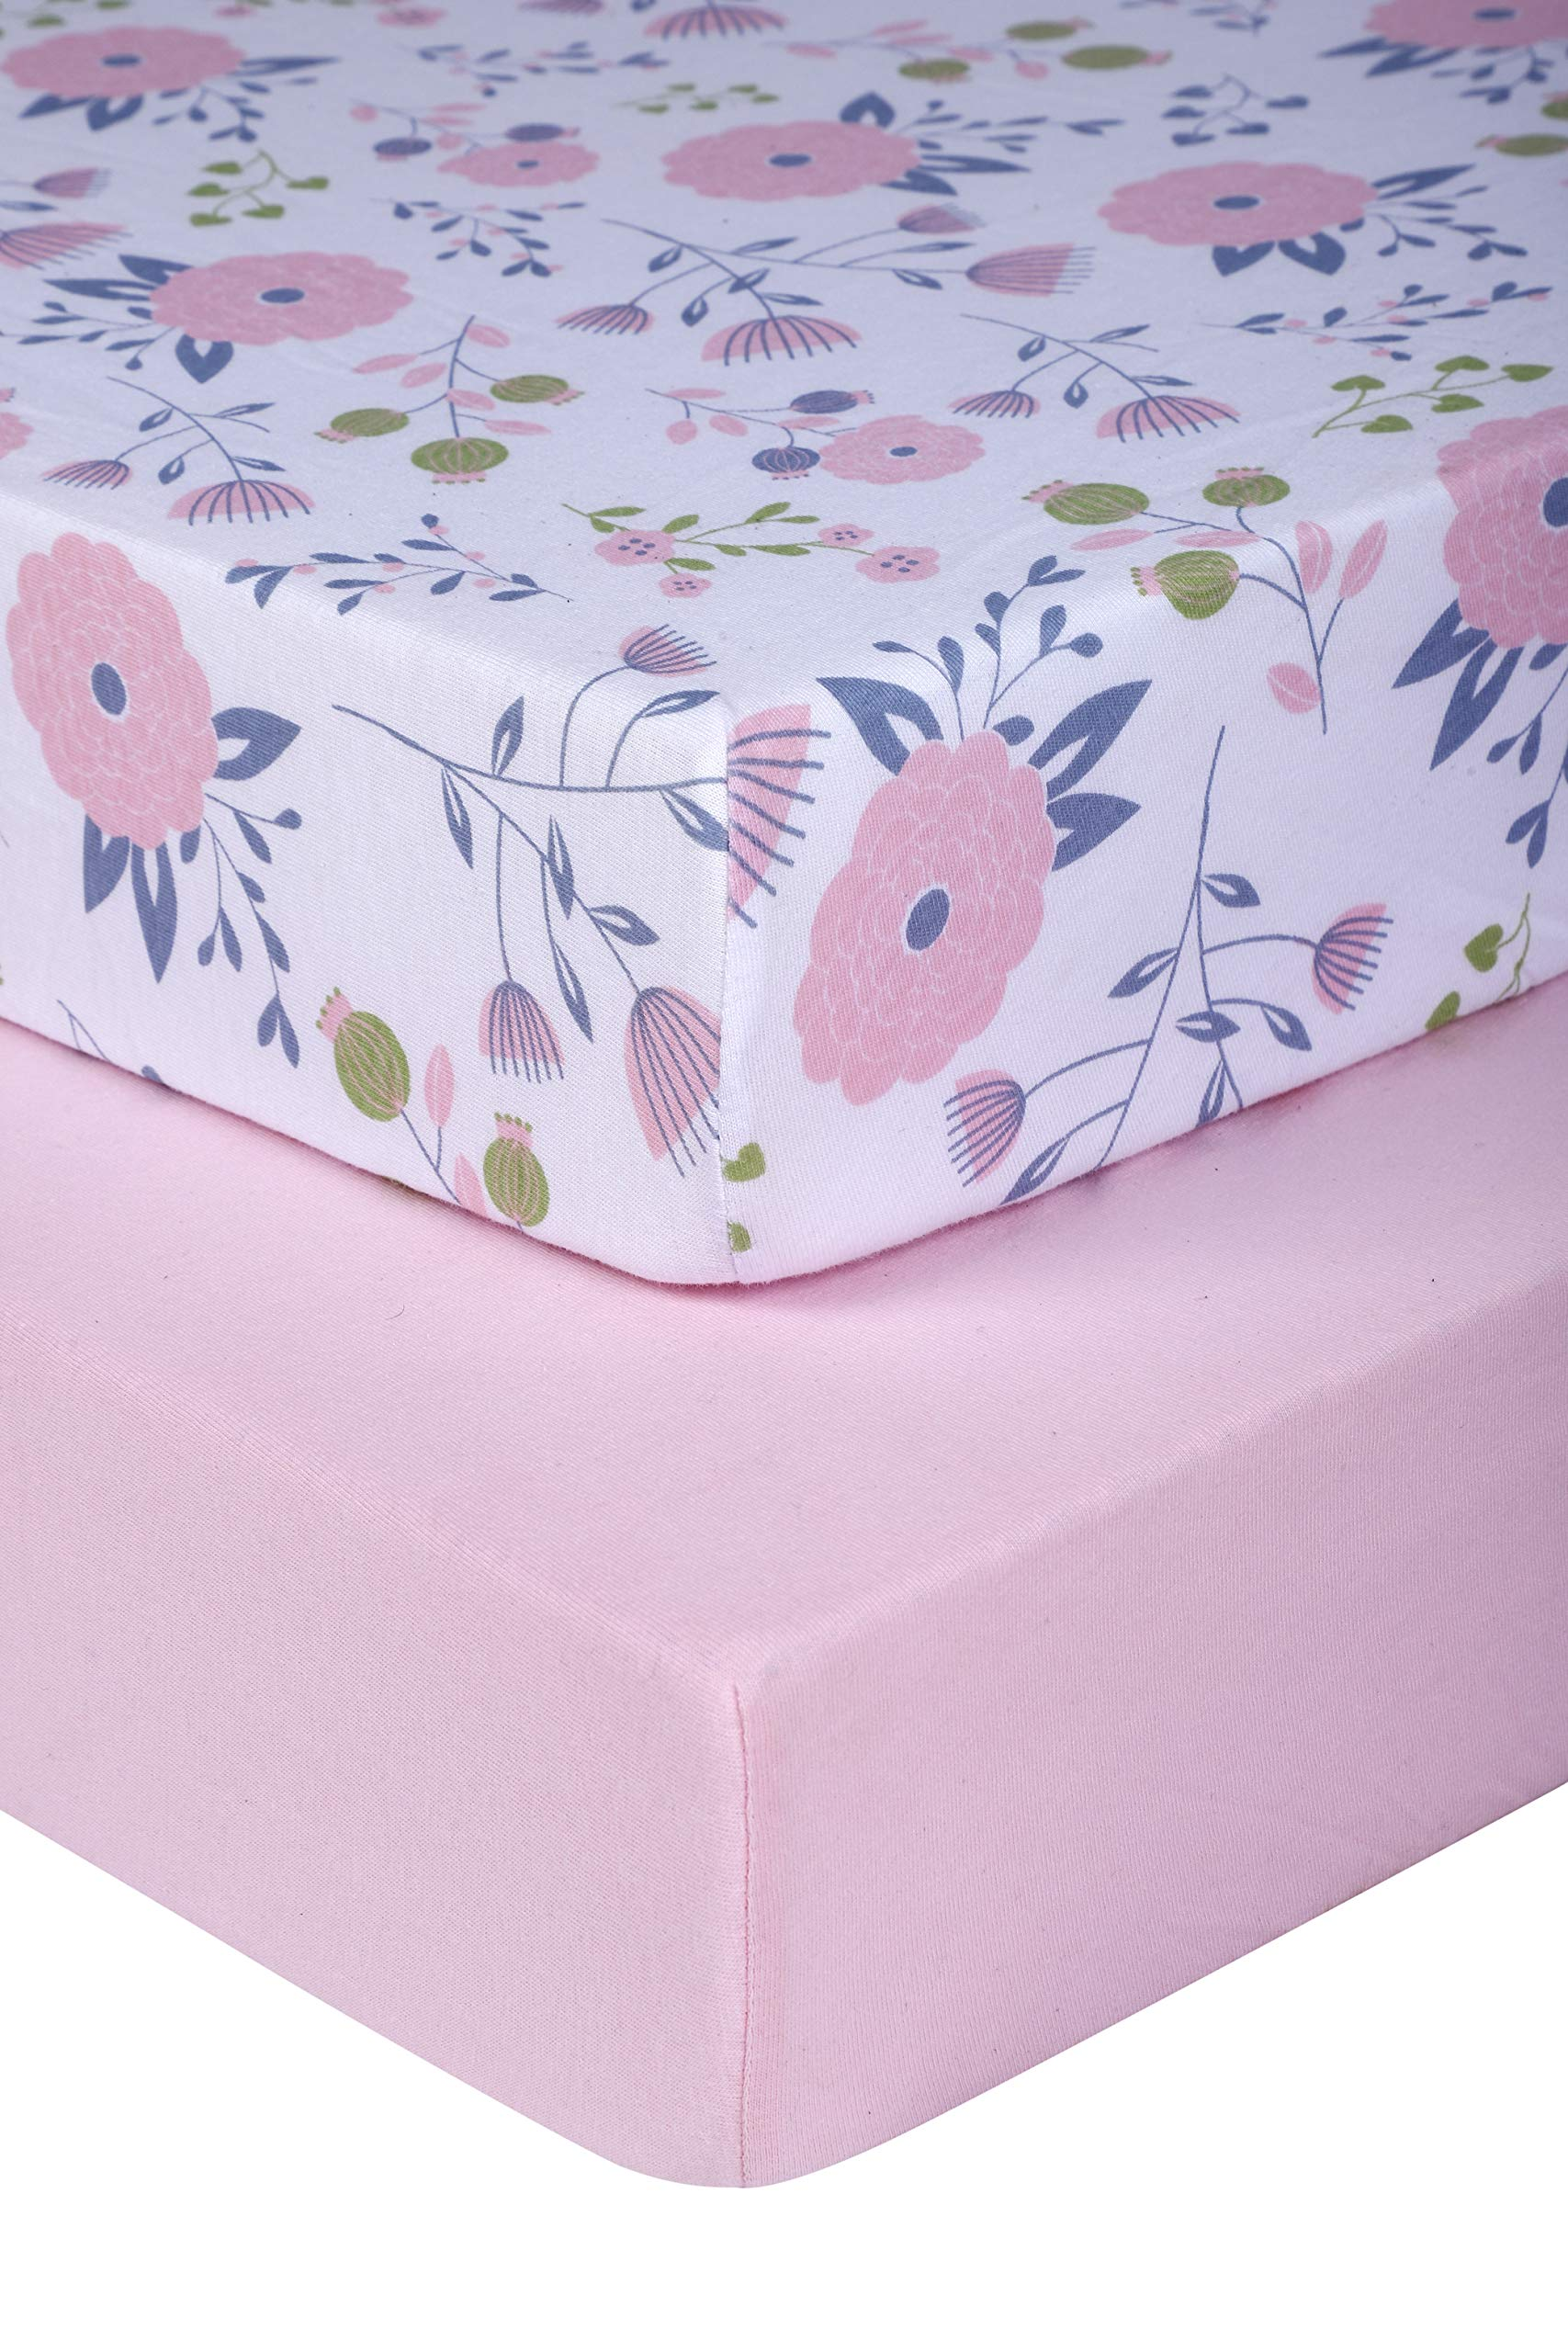 Pickle & Pumpkin Graco Pack n Play Mattress Sheet | 2 Pack Mini Crib Sheets in 100% Organic Jersey Cotton | Ideal as Pack and Play Mattress, Playpen or Playard Sheets | Pink & Floral Crib Sheet by Pickle & Pumpkin